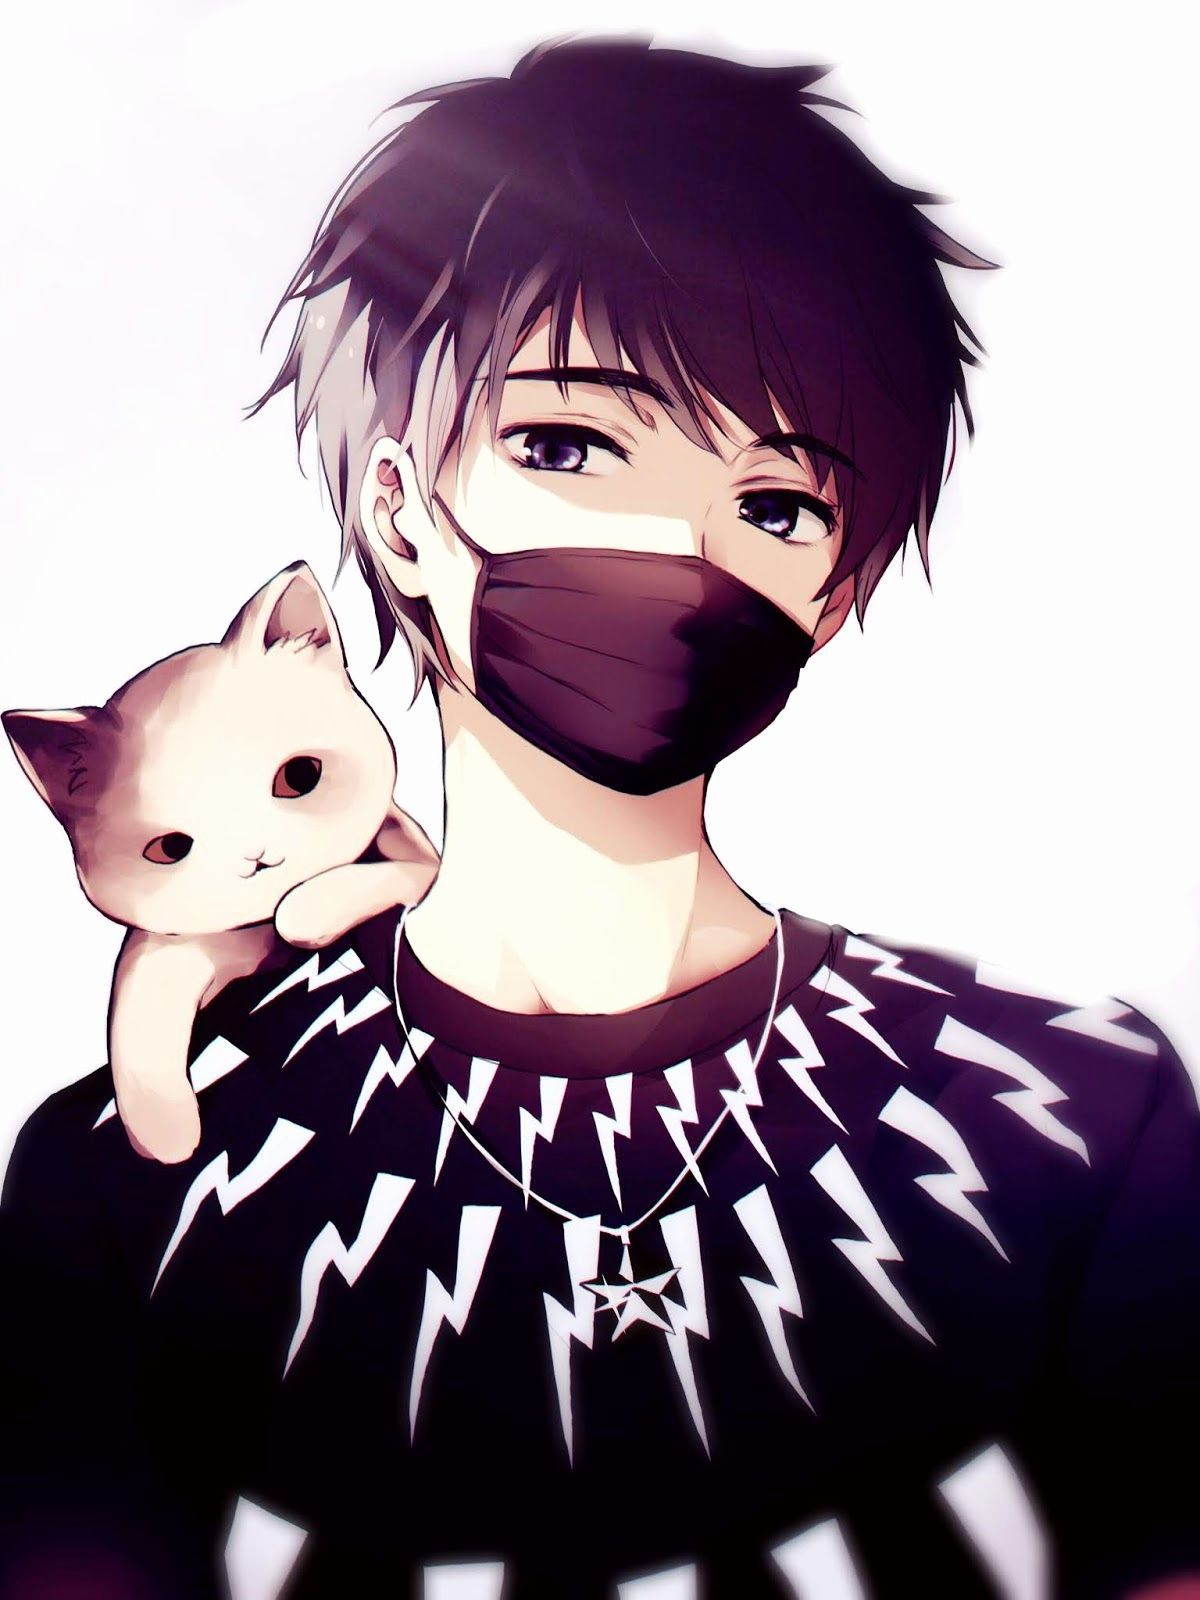 Anime Profile Picture Wallpapers Wallpaper Cave